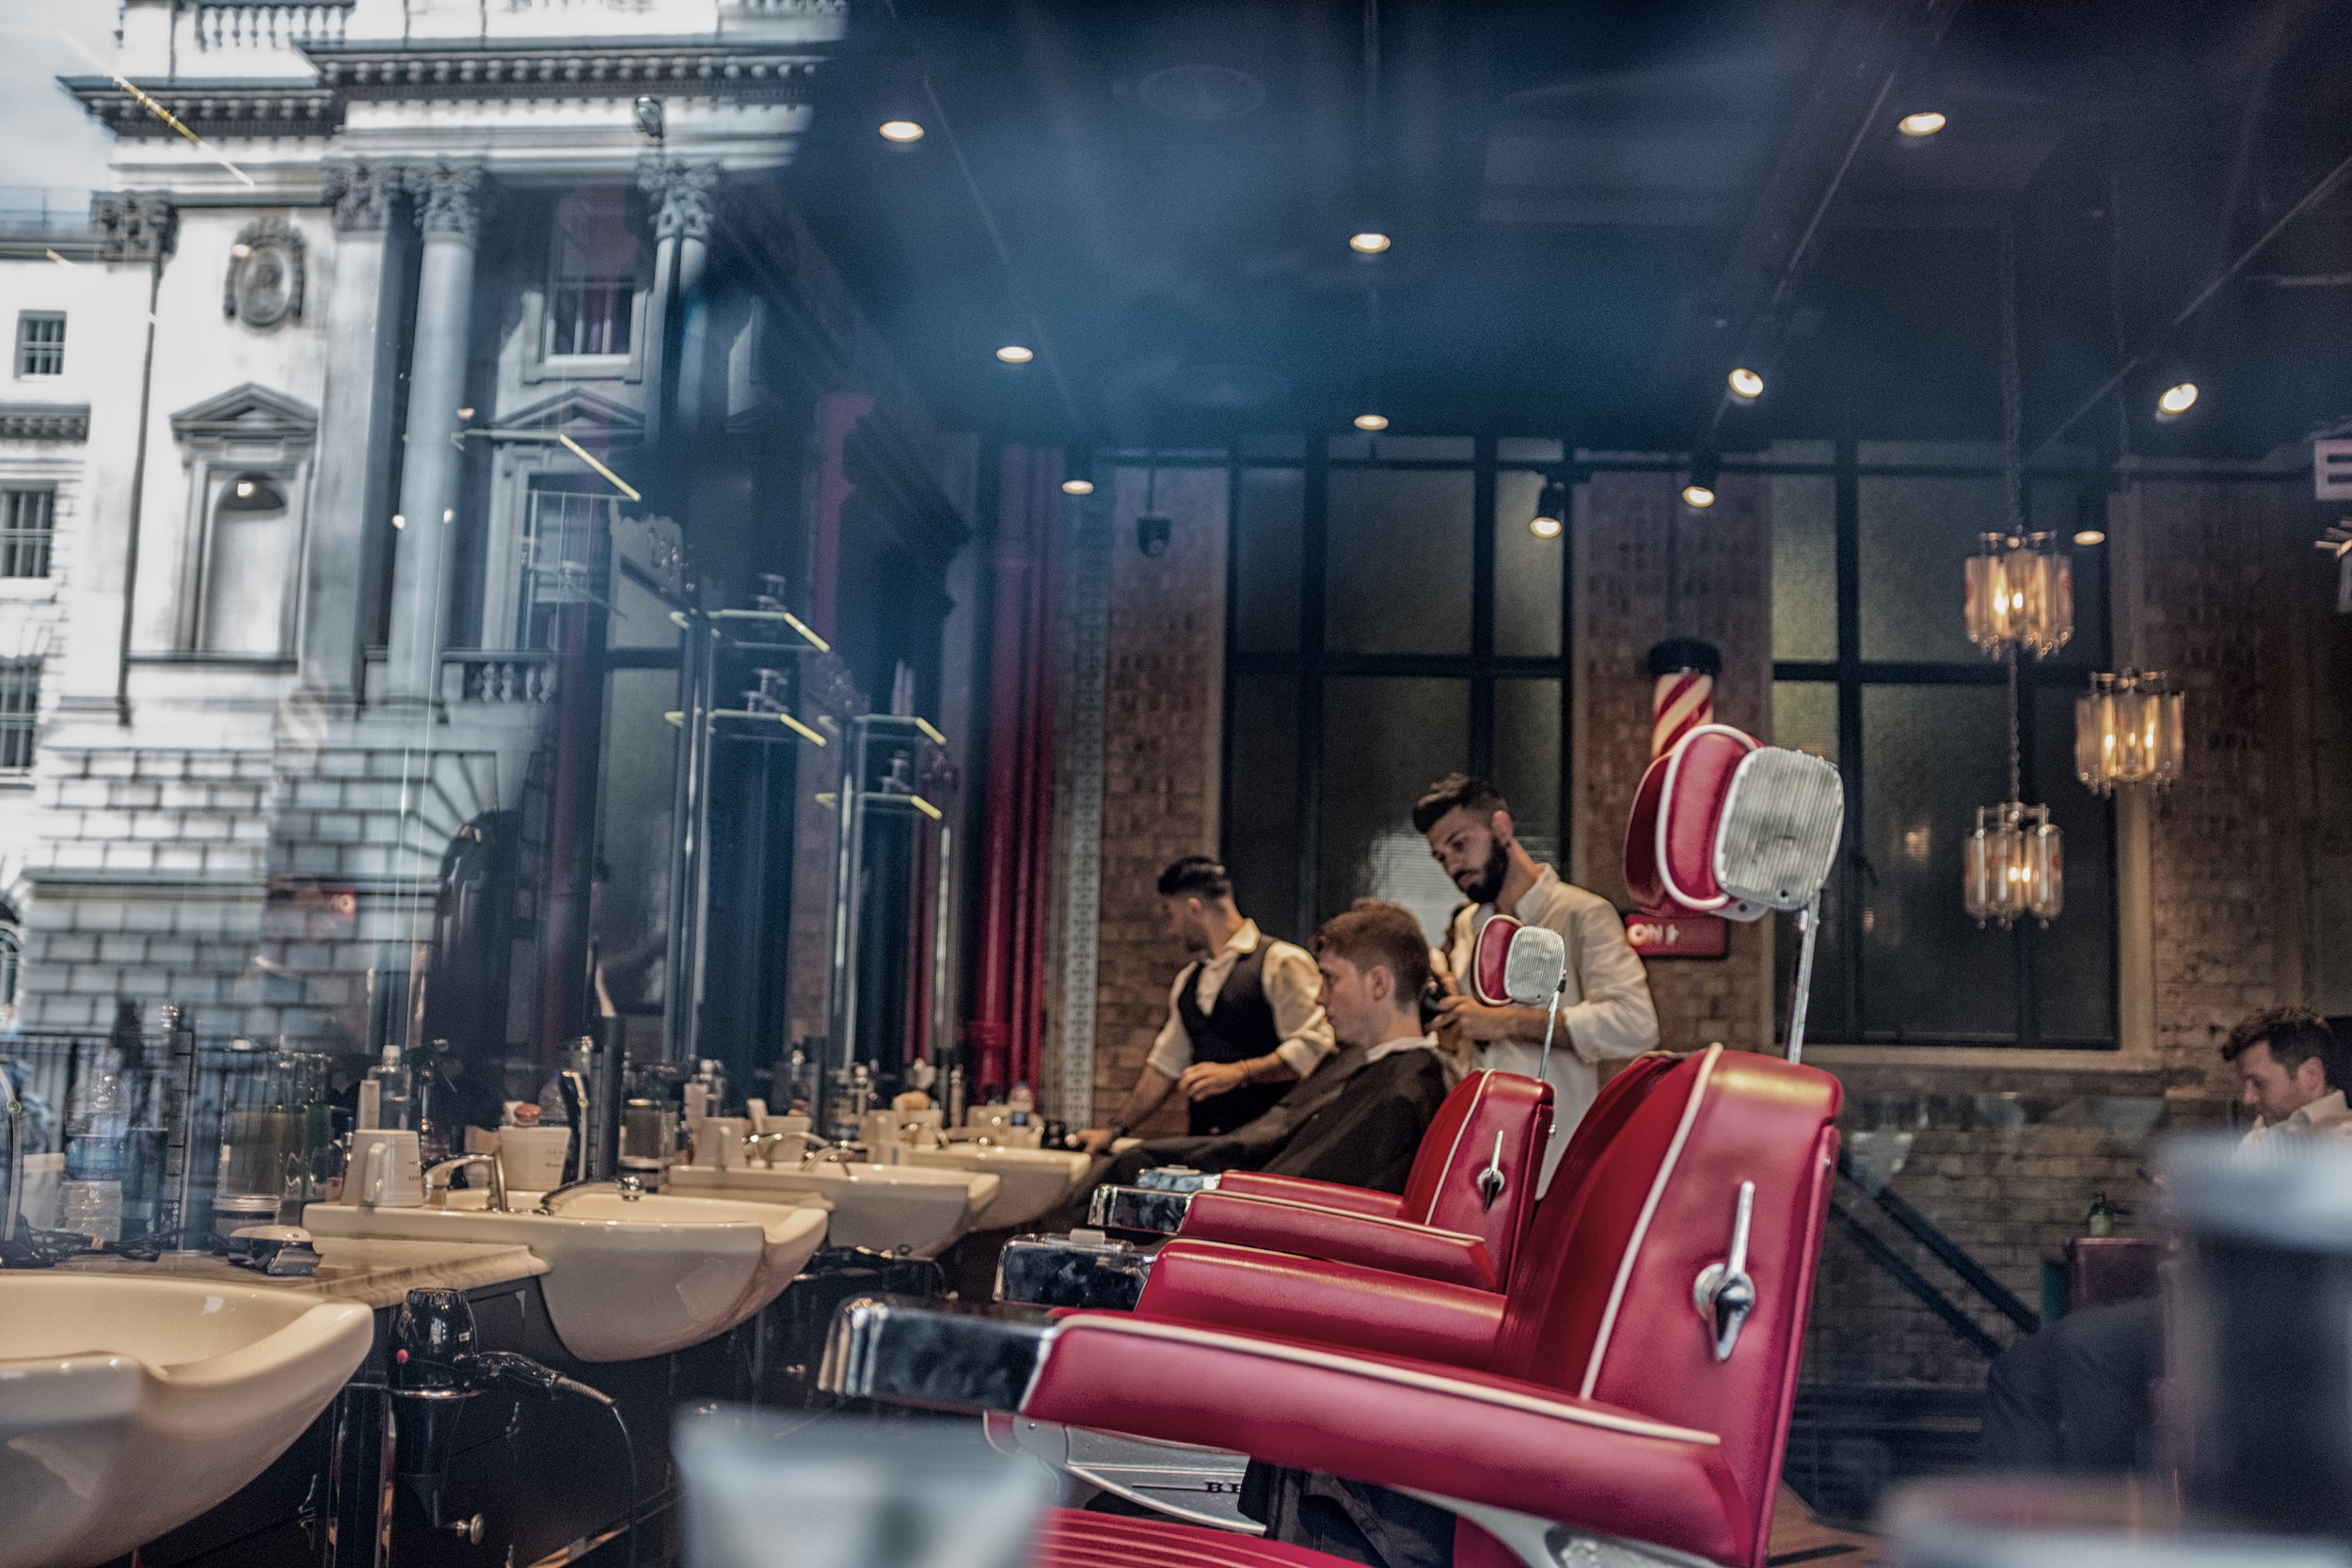 Barbershop Reflections.